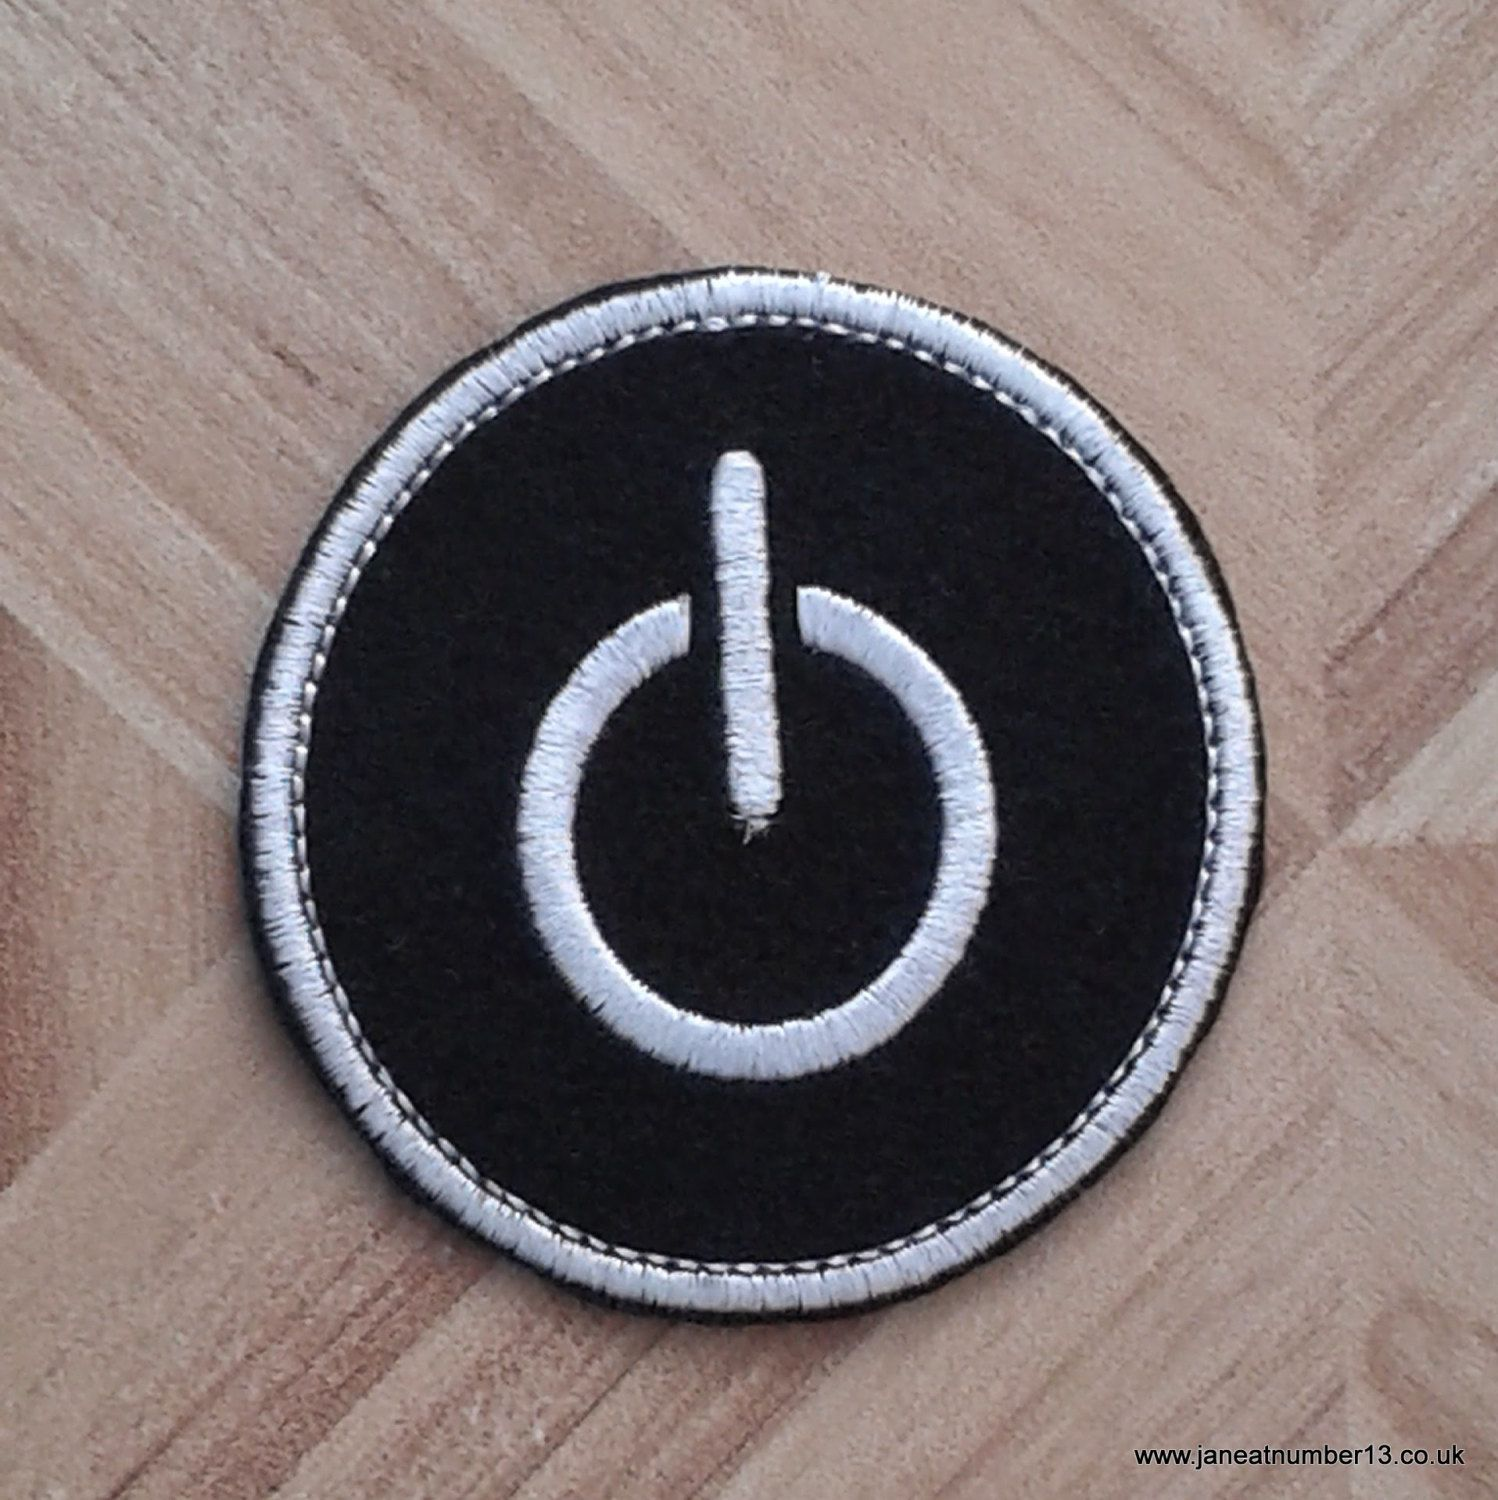 Iron on patch, embroidered patch, patches for jeans, patch for backpack,  power button patch, geek patch, techie patch, black and white patch